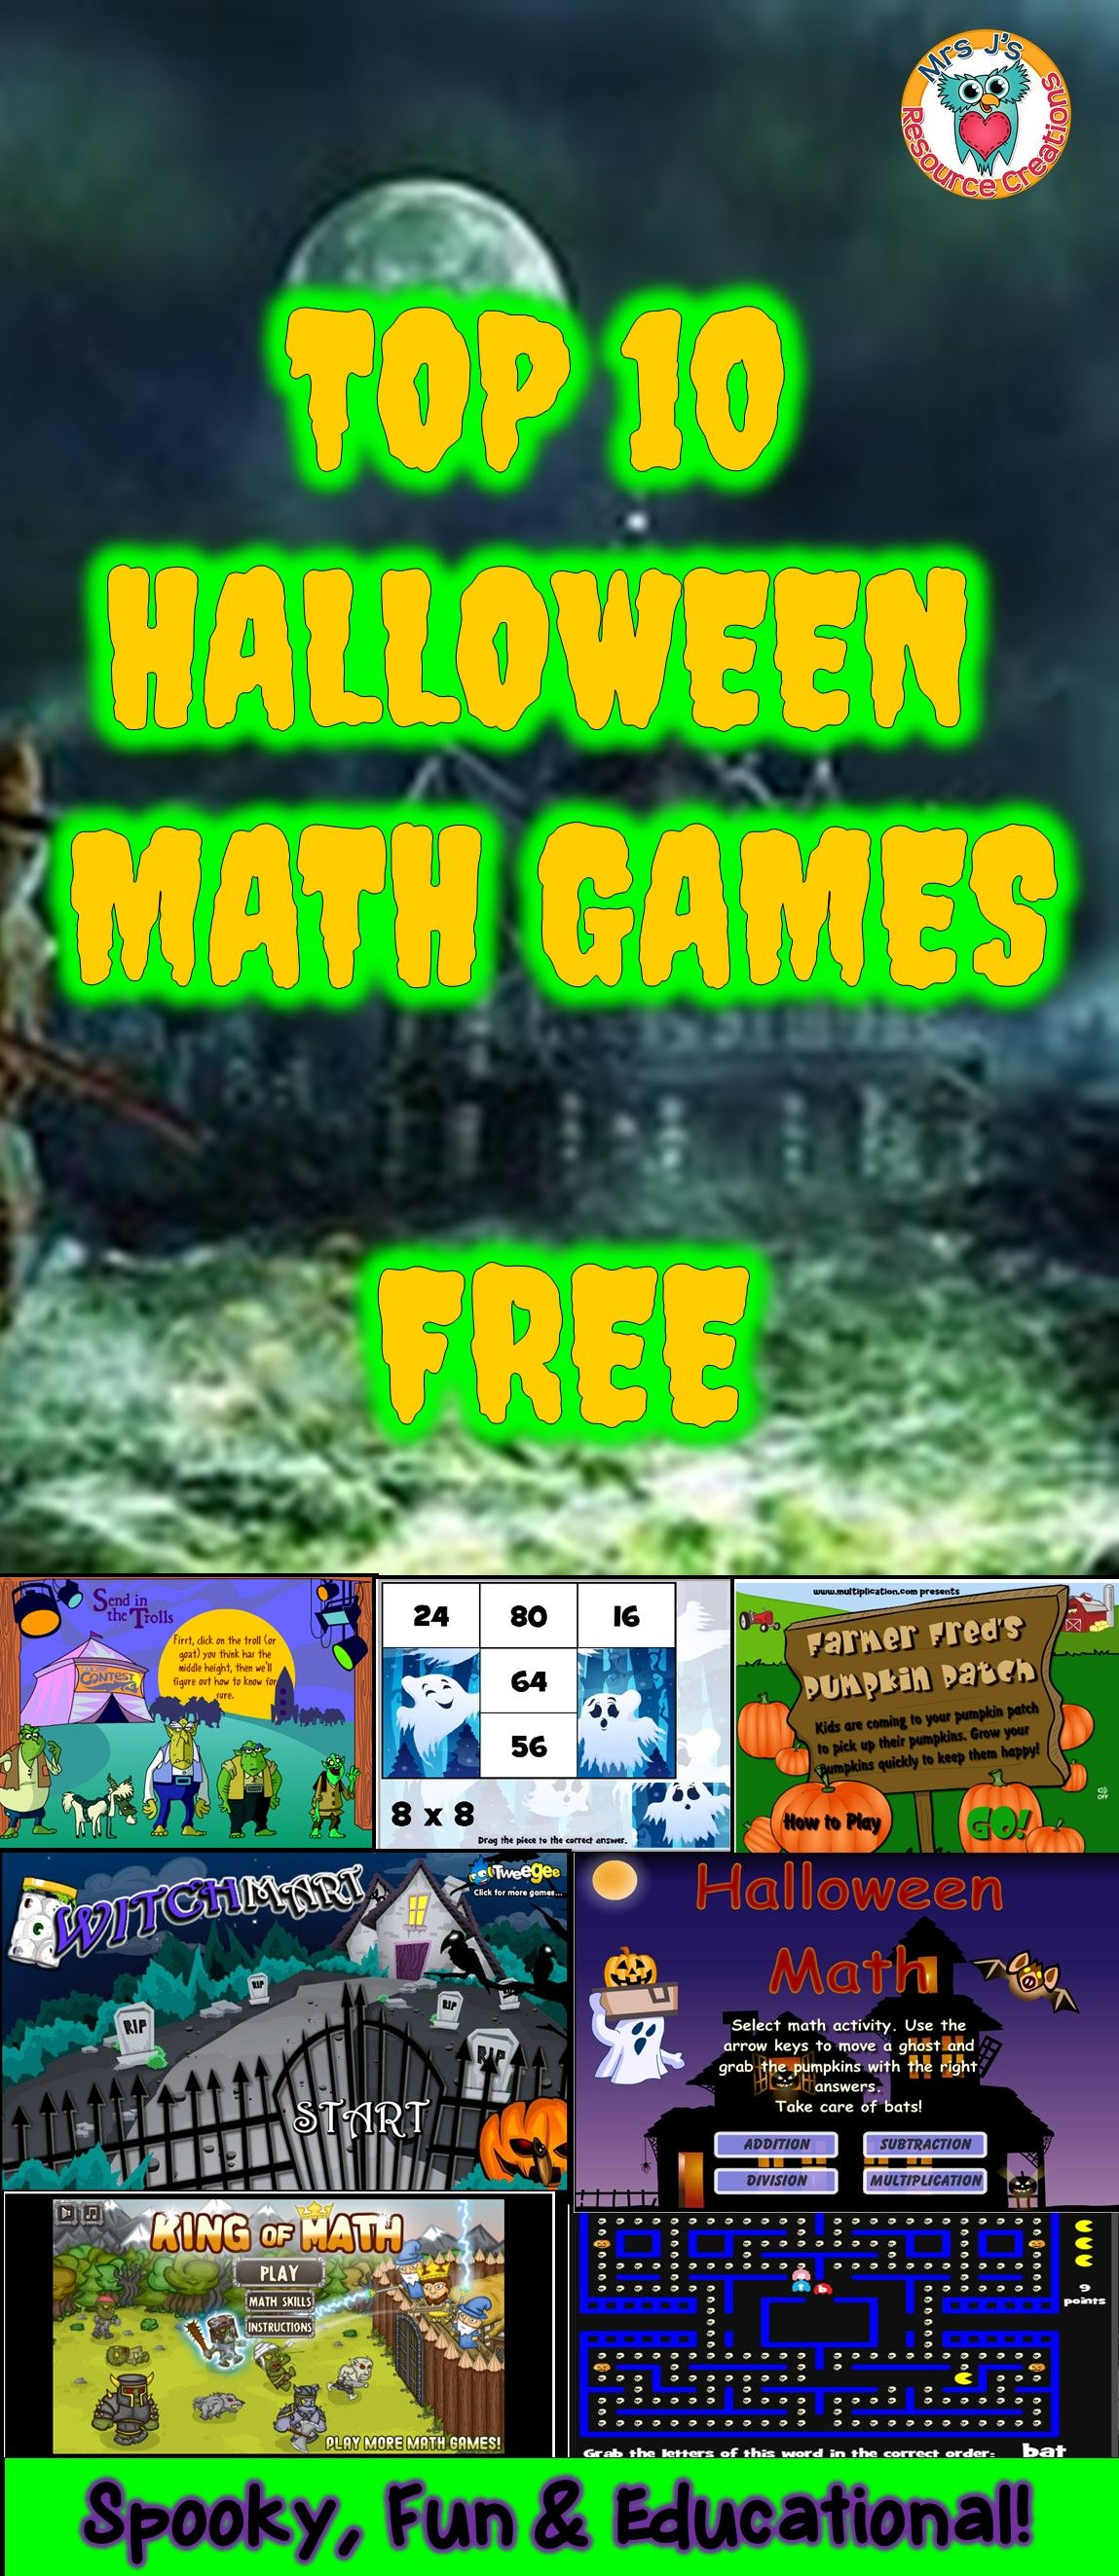 Halloween math games free to play online! | TpT Blogs | Pinterest ...